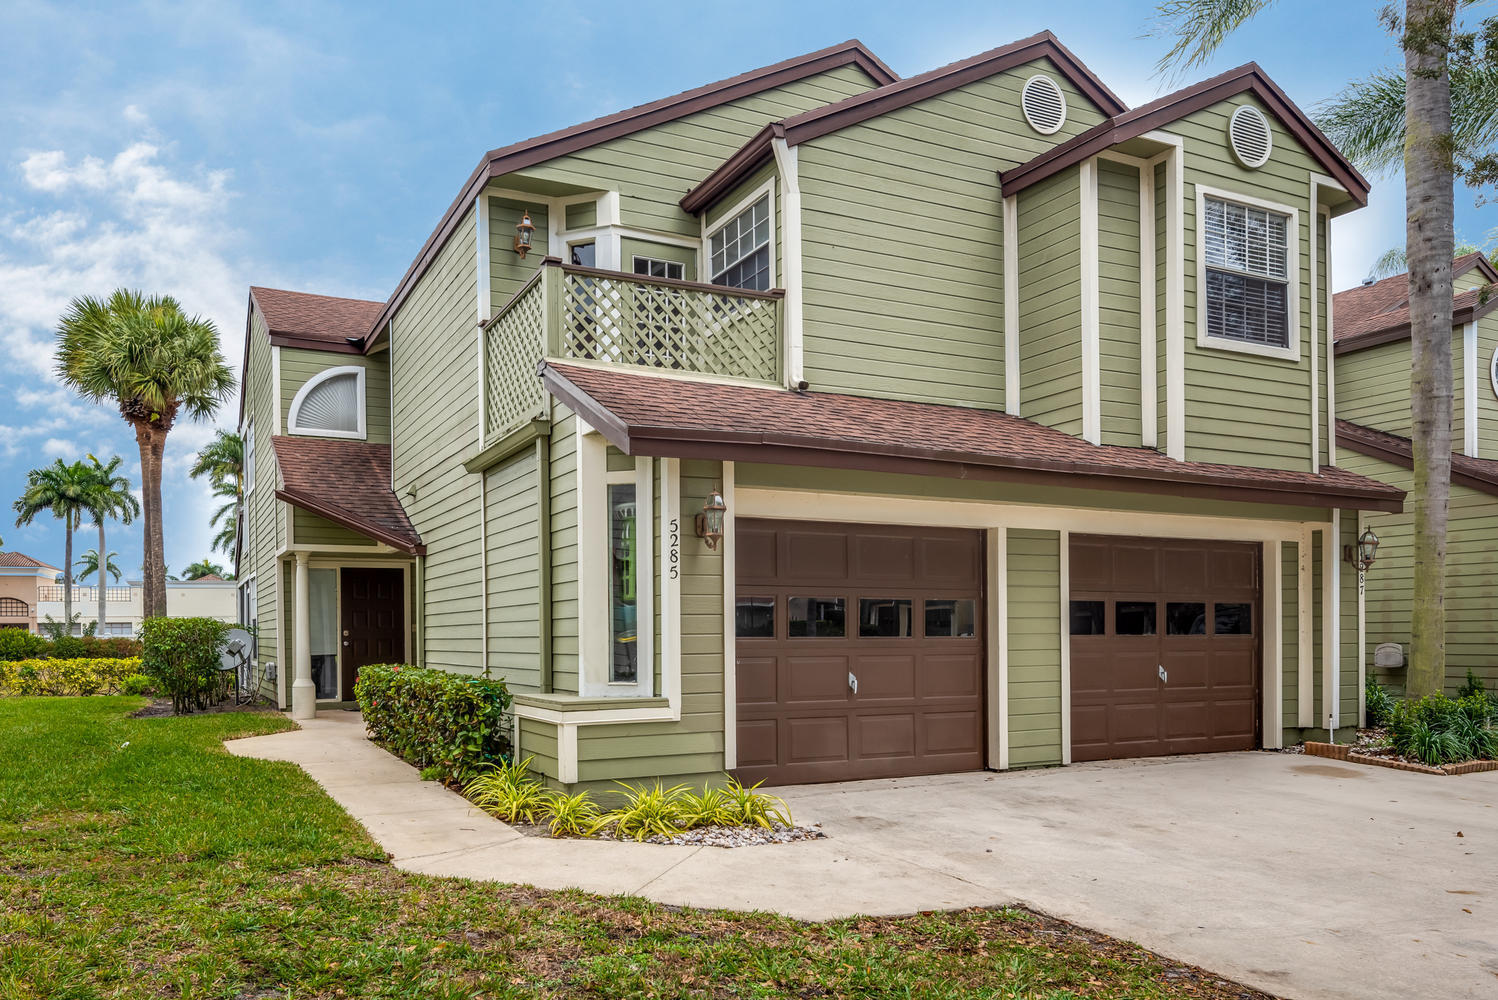 Home for sale in CARRIAGE HOUSES I CONDO Boca Raton Florida